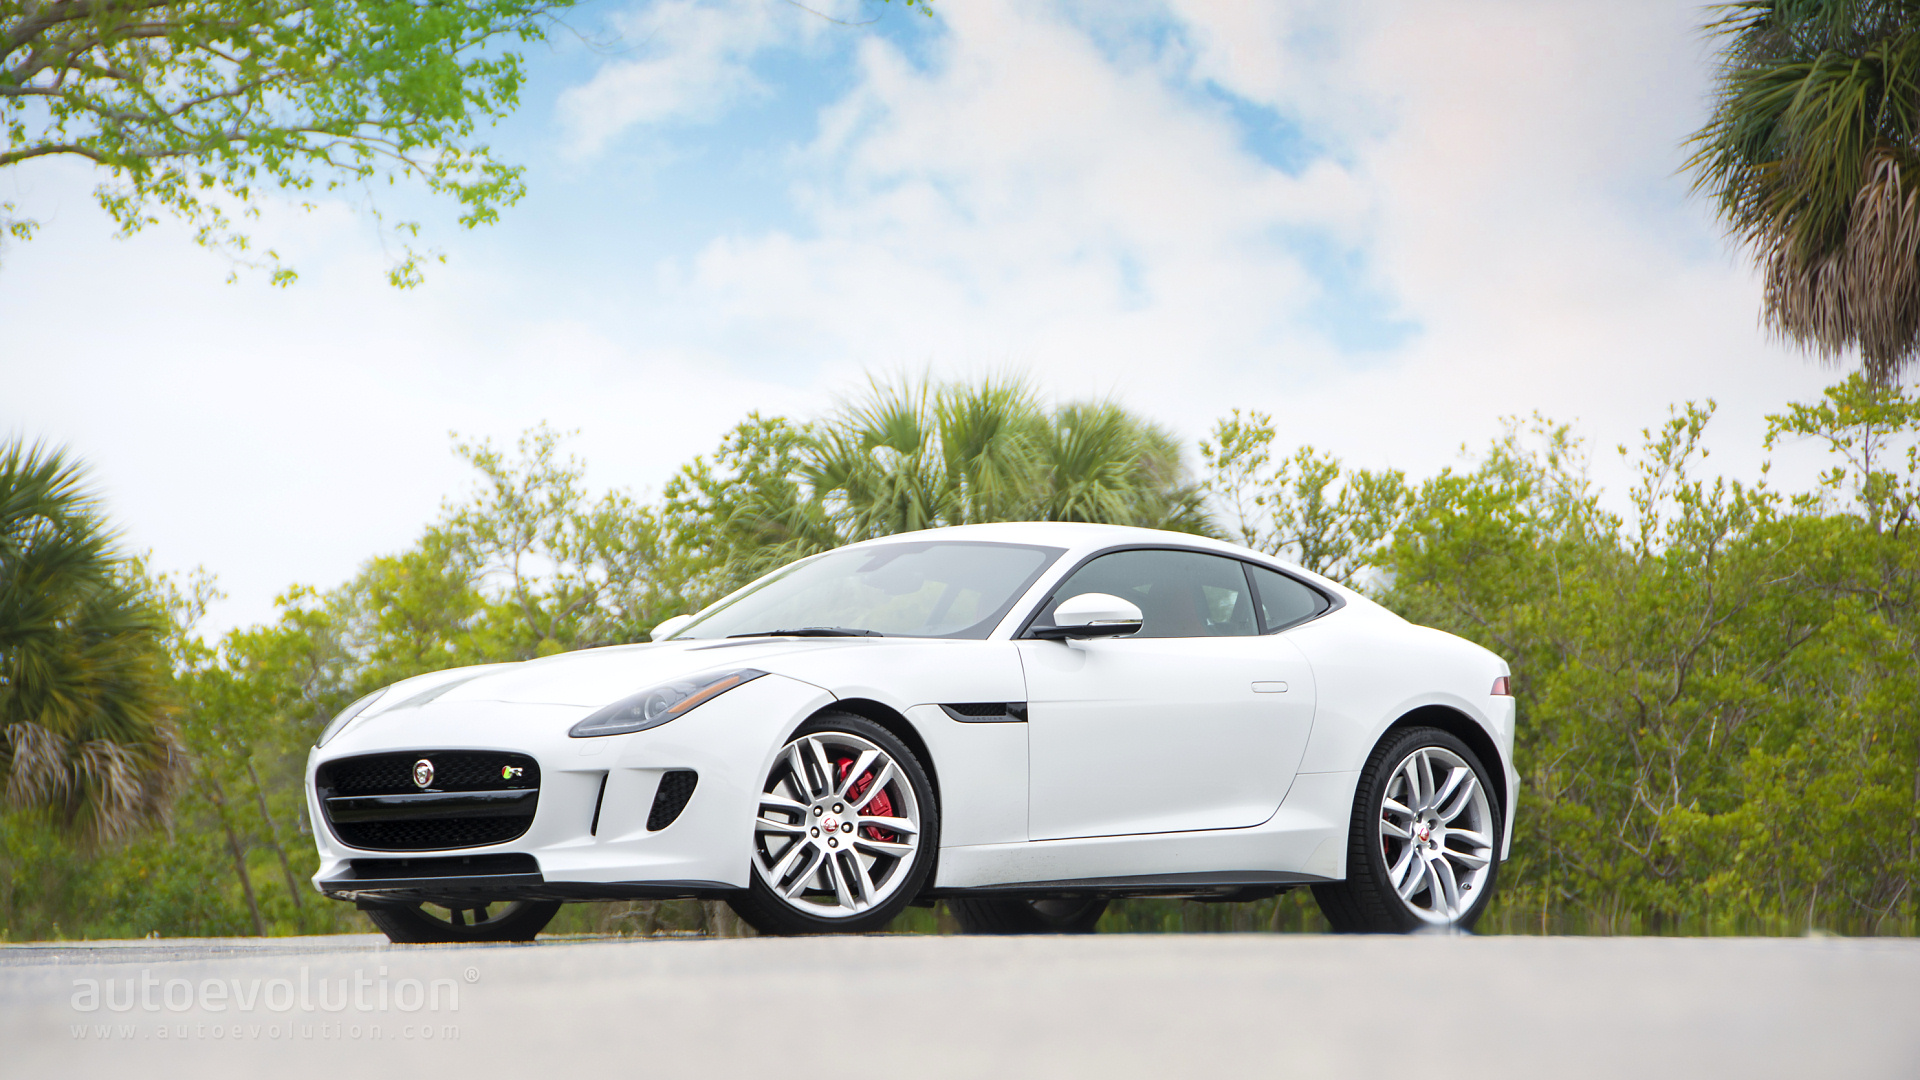 Jaguar f type coupe wallpaper - photo#21